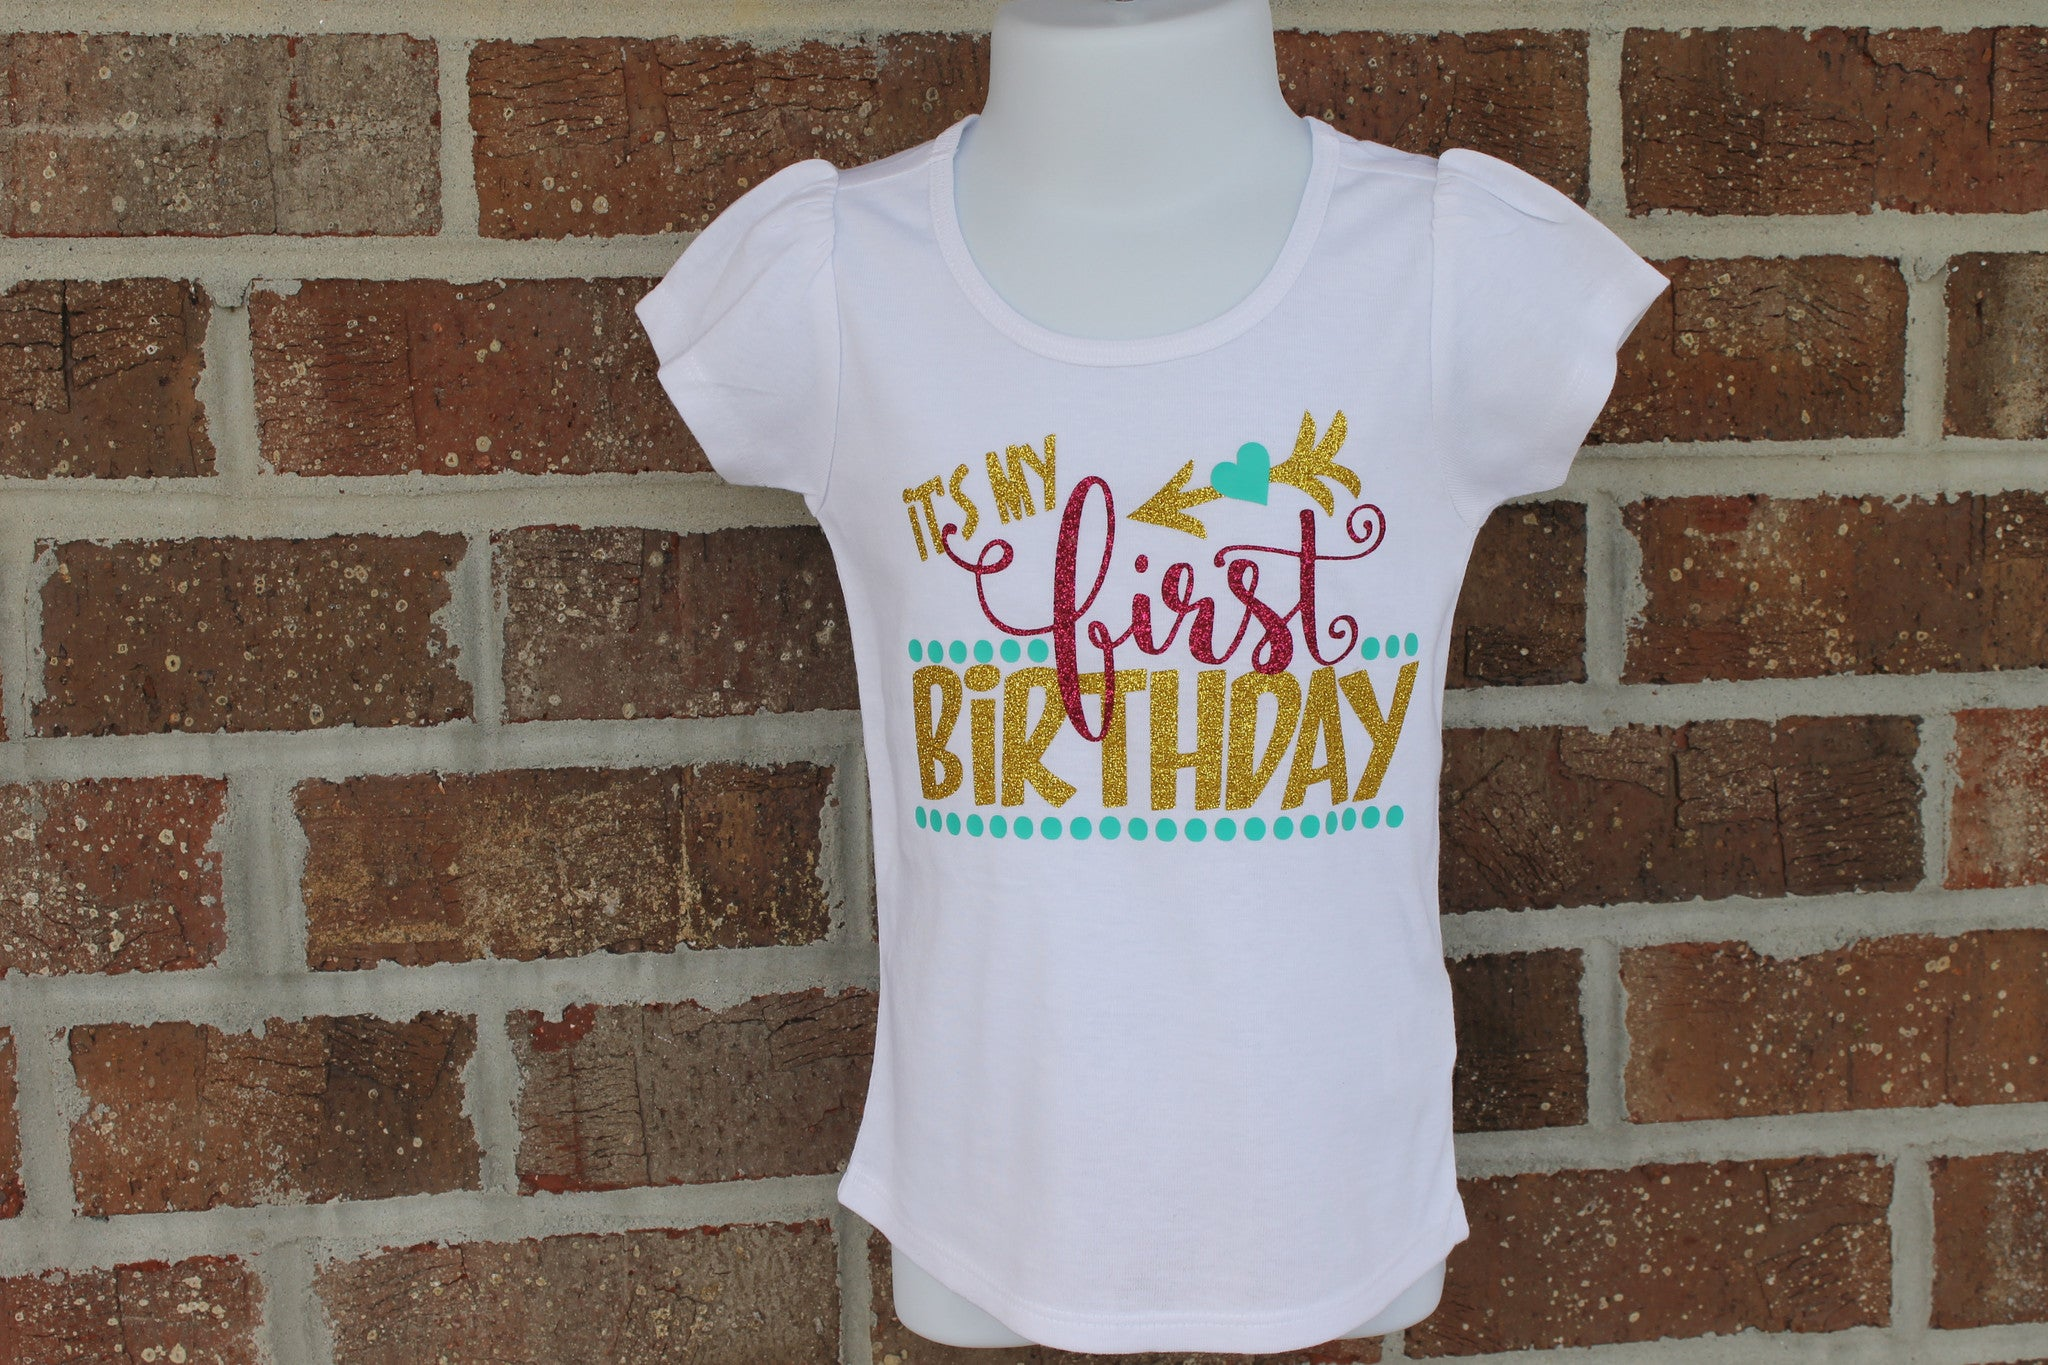 bd309811 ... It's My First Birthday gold and hot pink glitter birthday shirt - fancy  boutique girls shirt